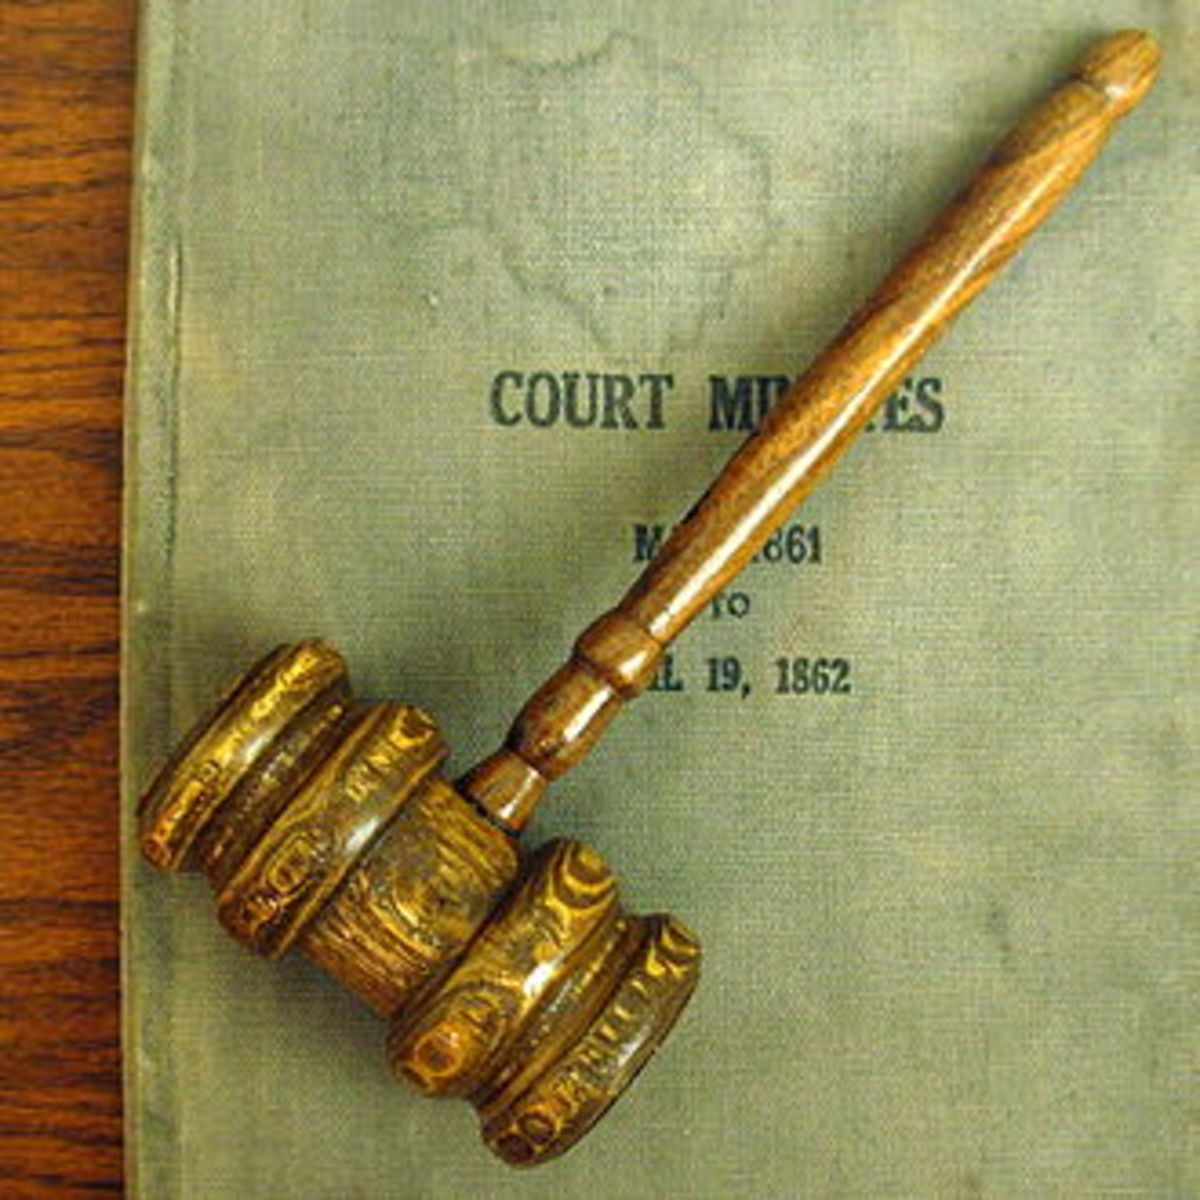 Old gavel and court minutes displayed at the Minnesota Judicial Center